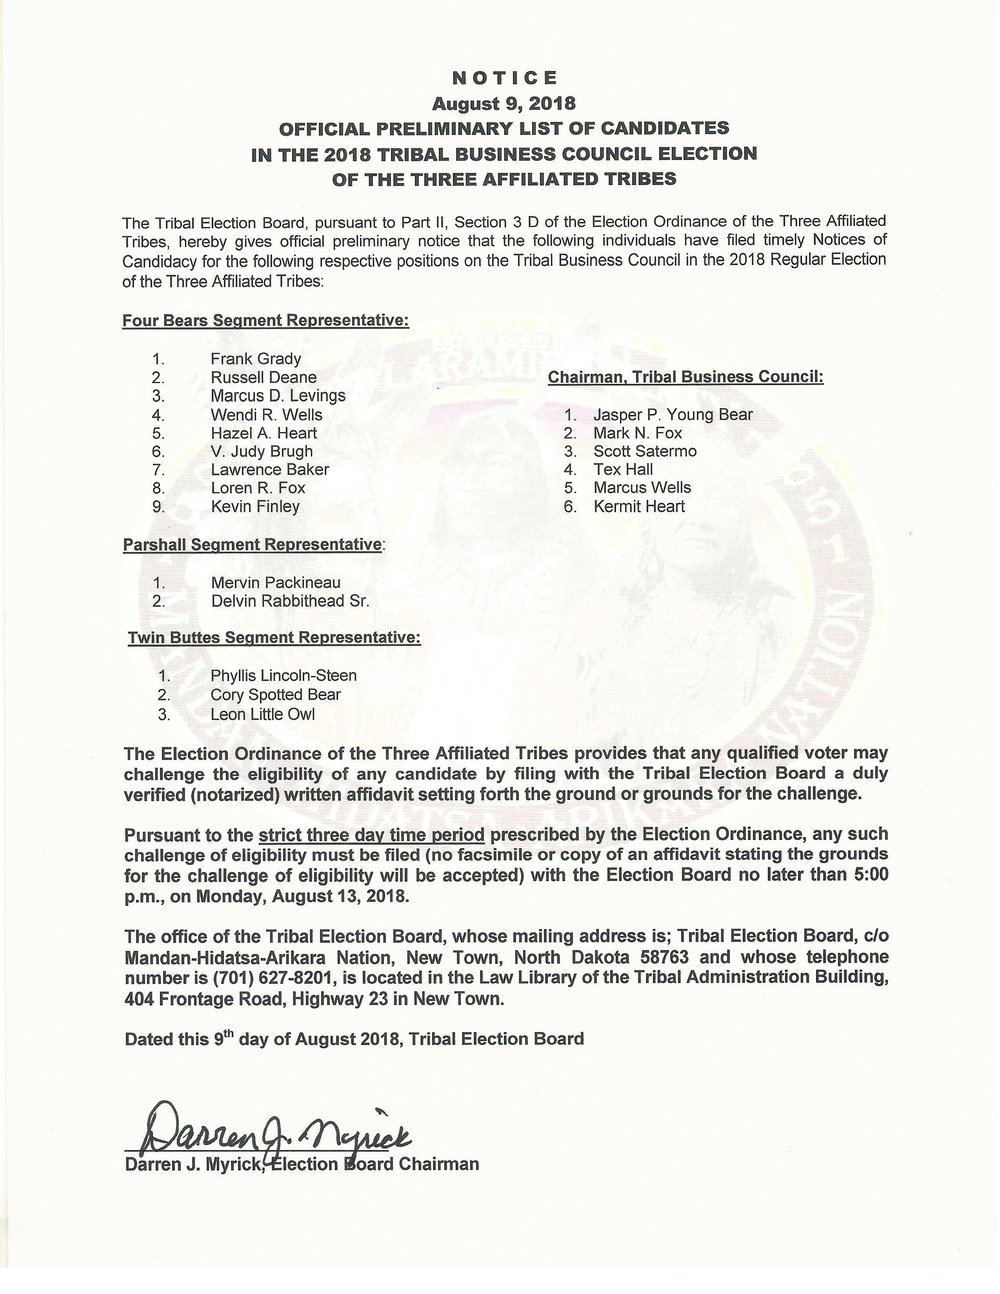 Official Preliminary List of Candidates in the 2018 TAT TBC Election.jpg